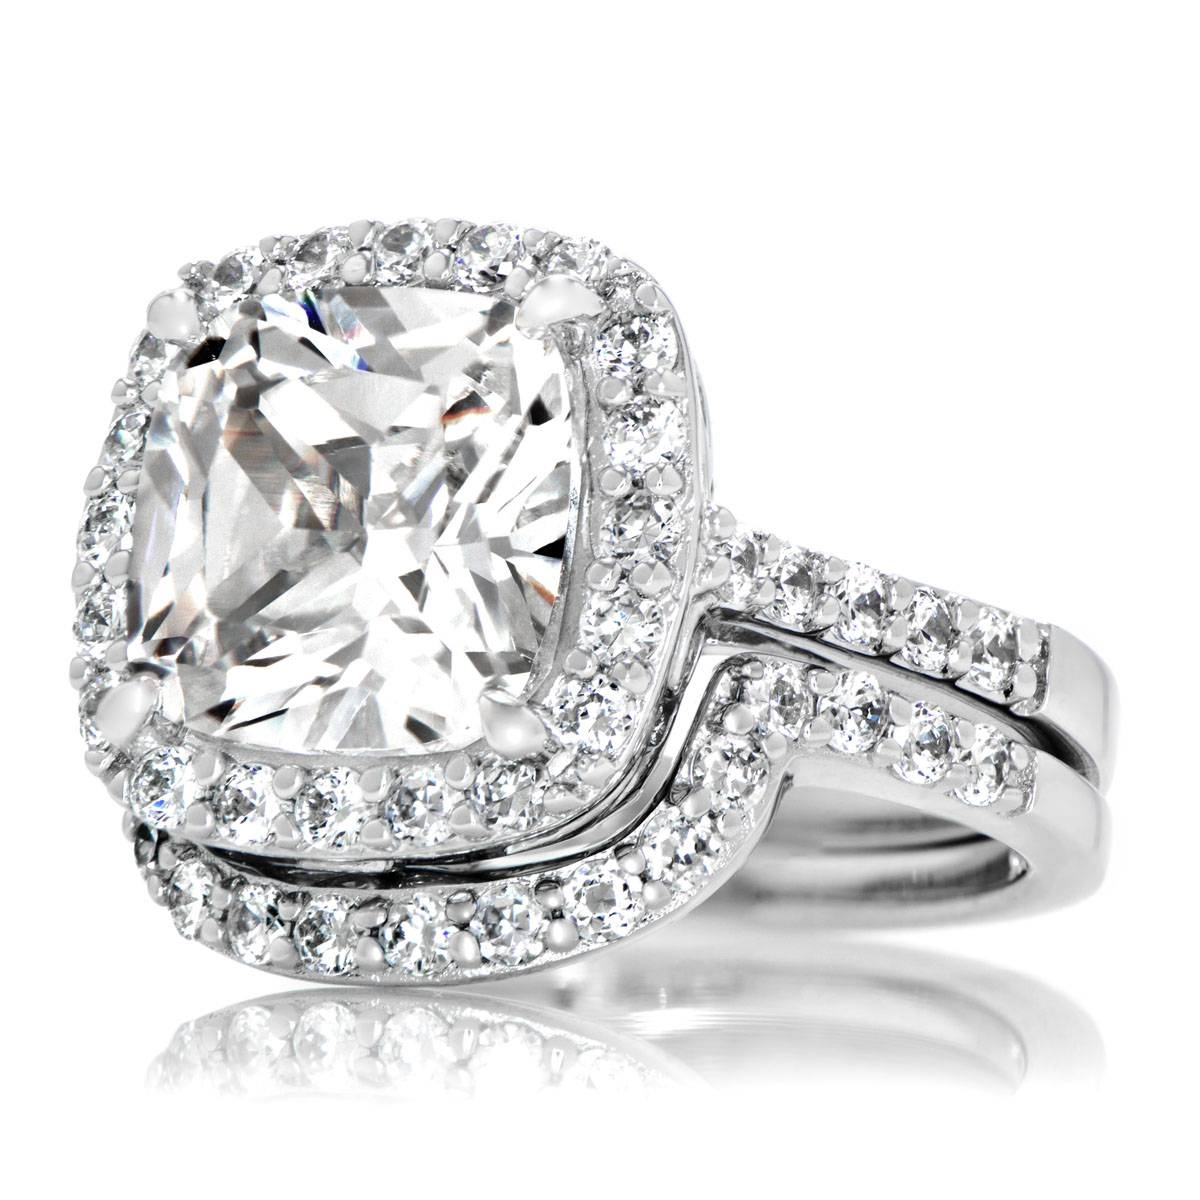 Cushion Cut Cz Halo Wedding Ring Set – 10Mm Within Cz Diamond Wedding Rings (View 6 of 15)